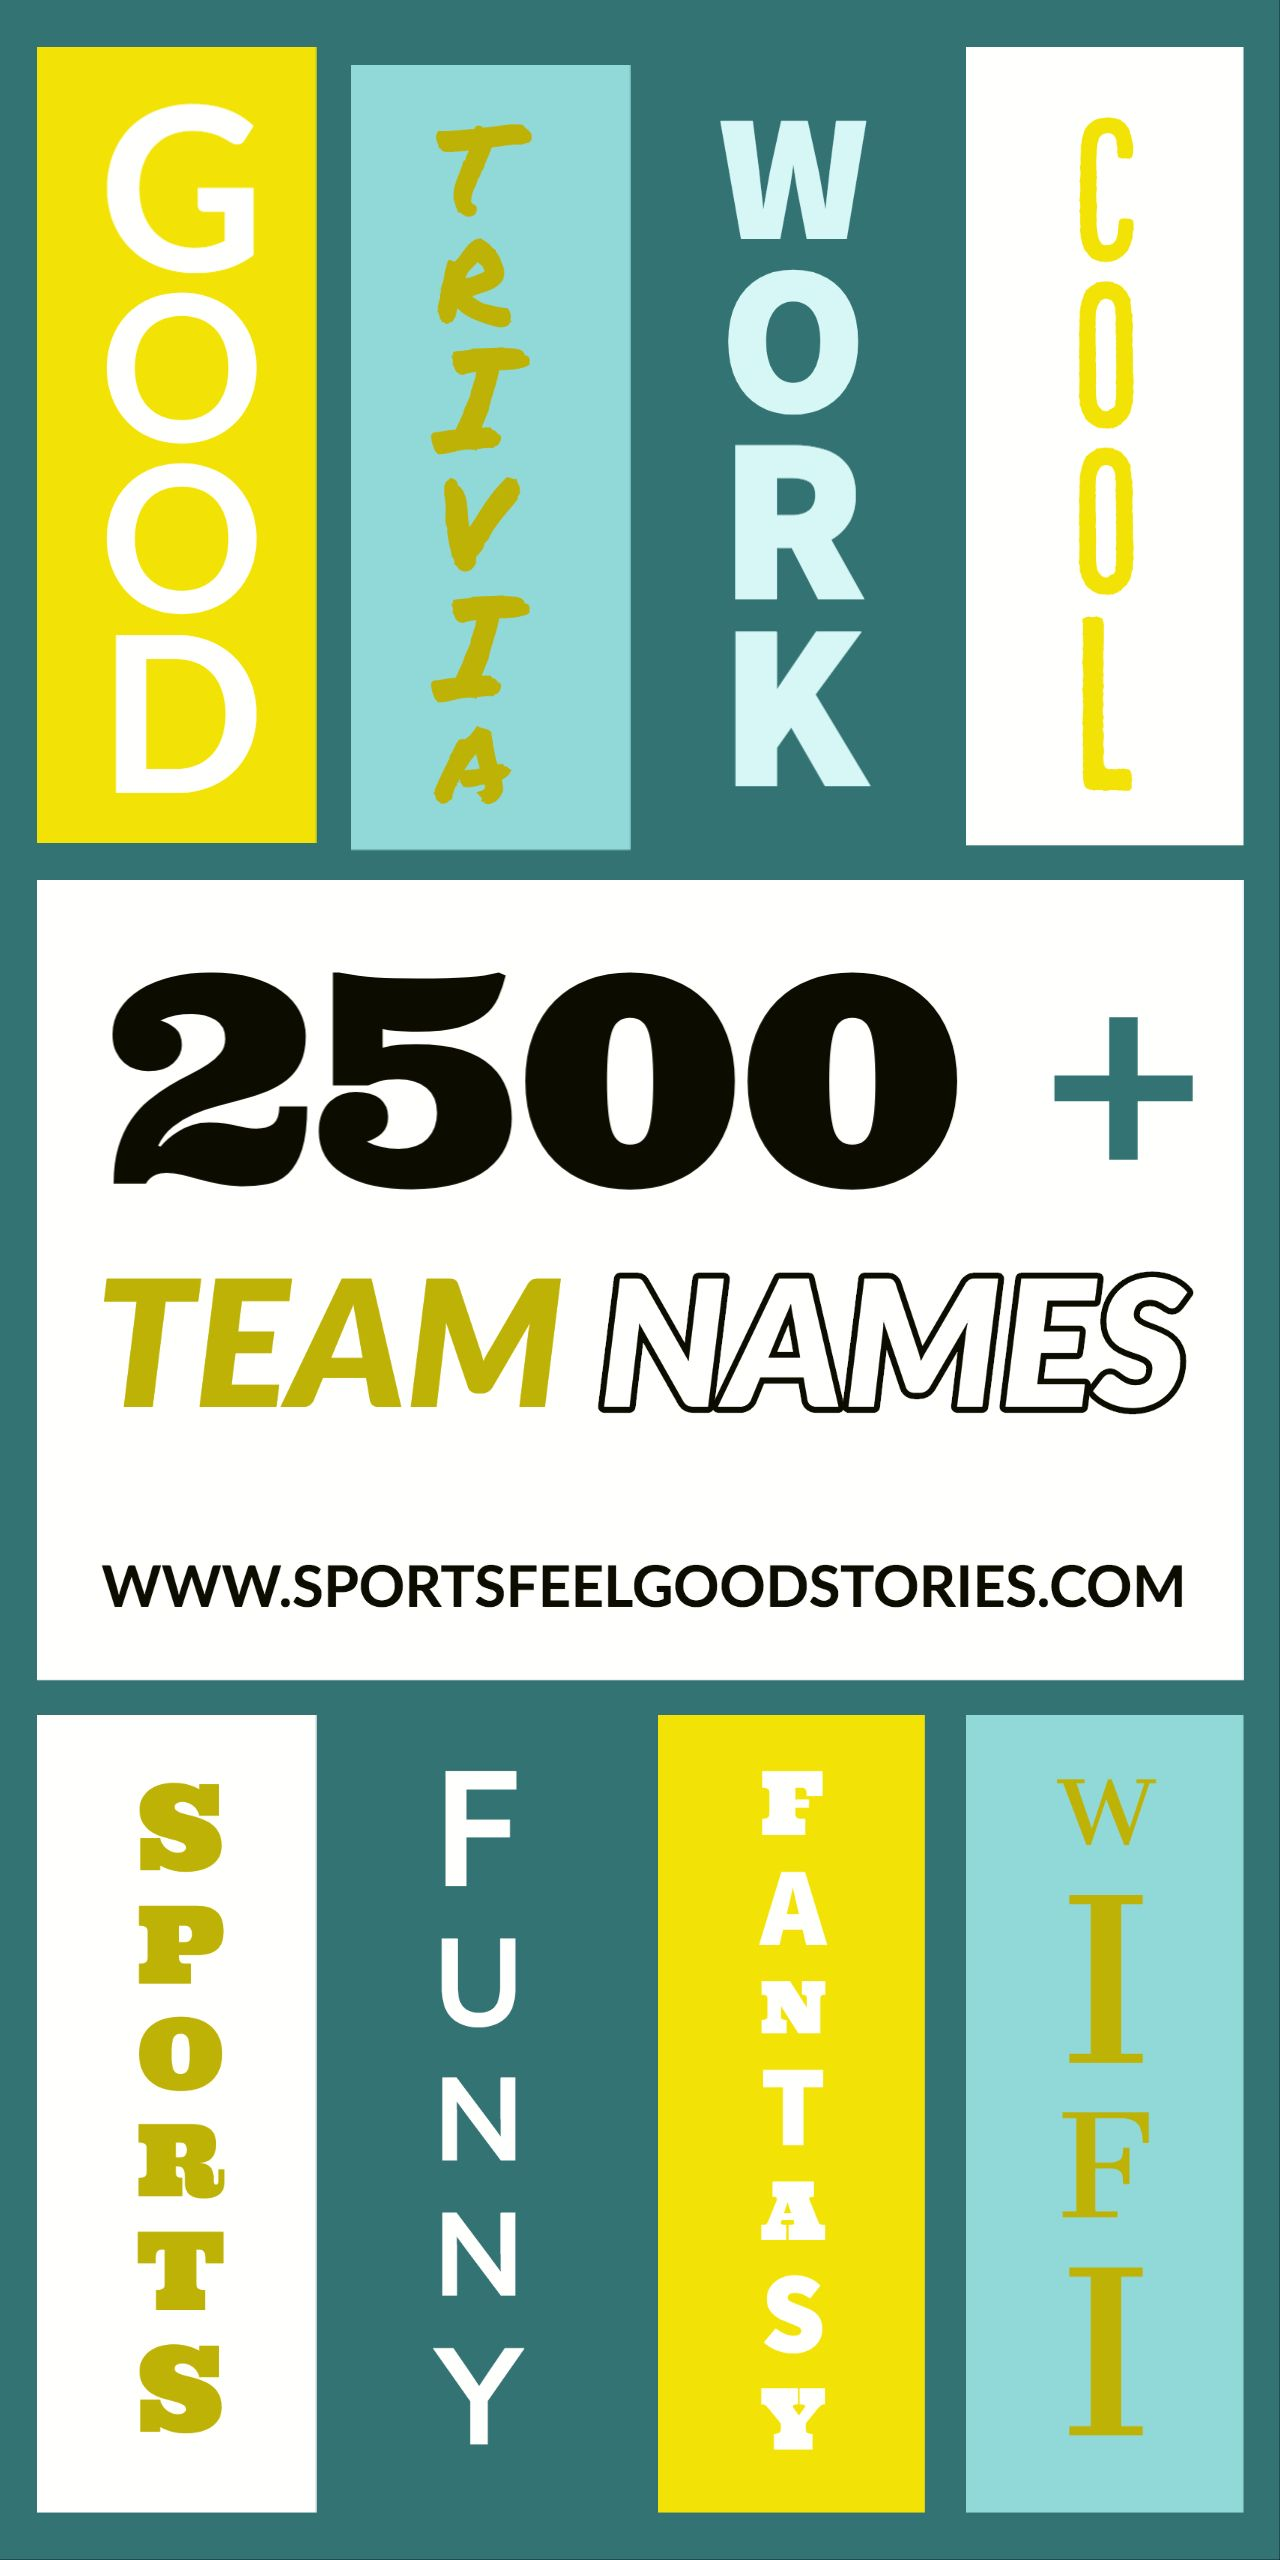 Best Team Names For Business Groups And Sports Clubs In 2020 Best Team Names Team Names Funny Team Names